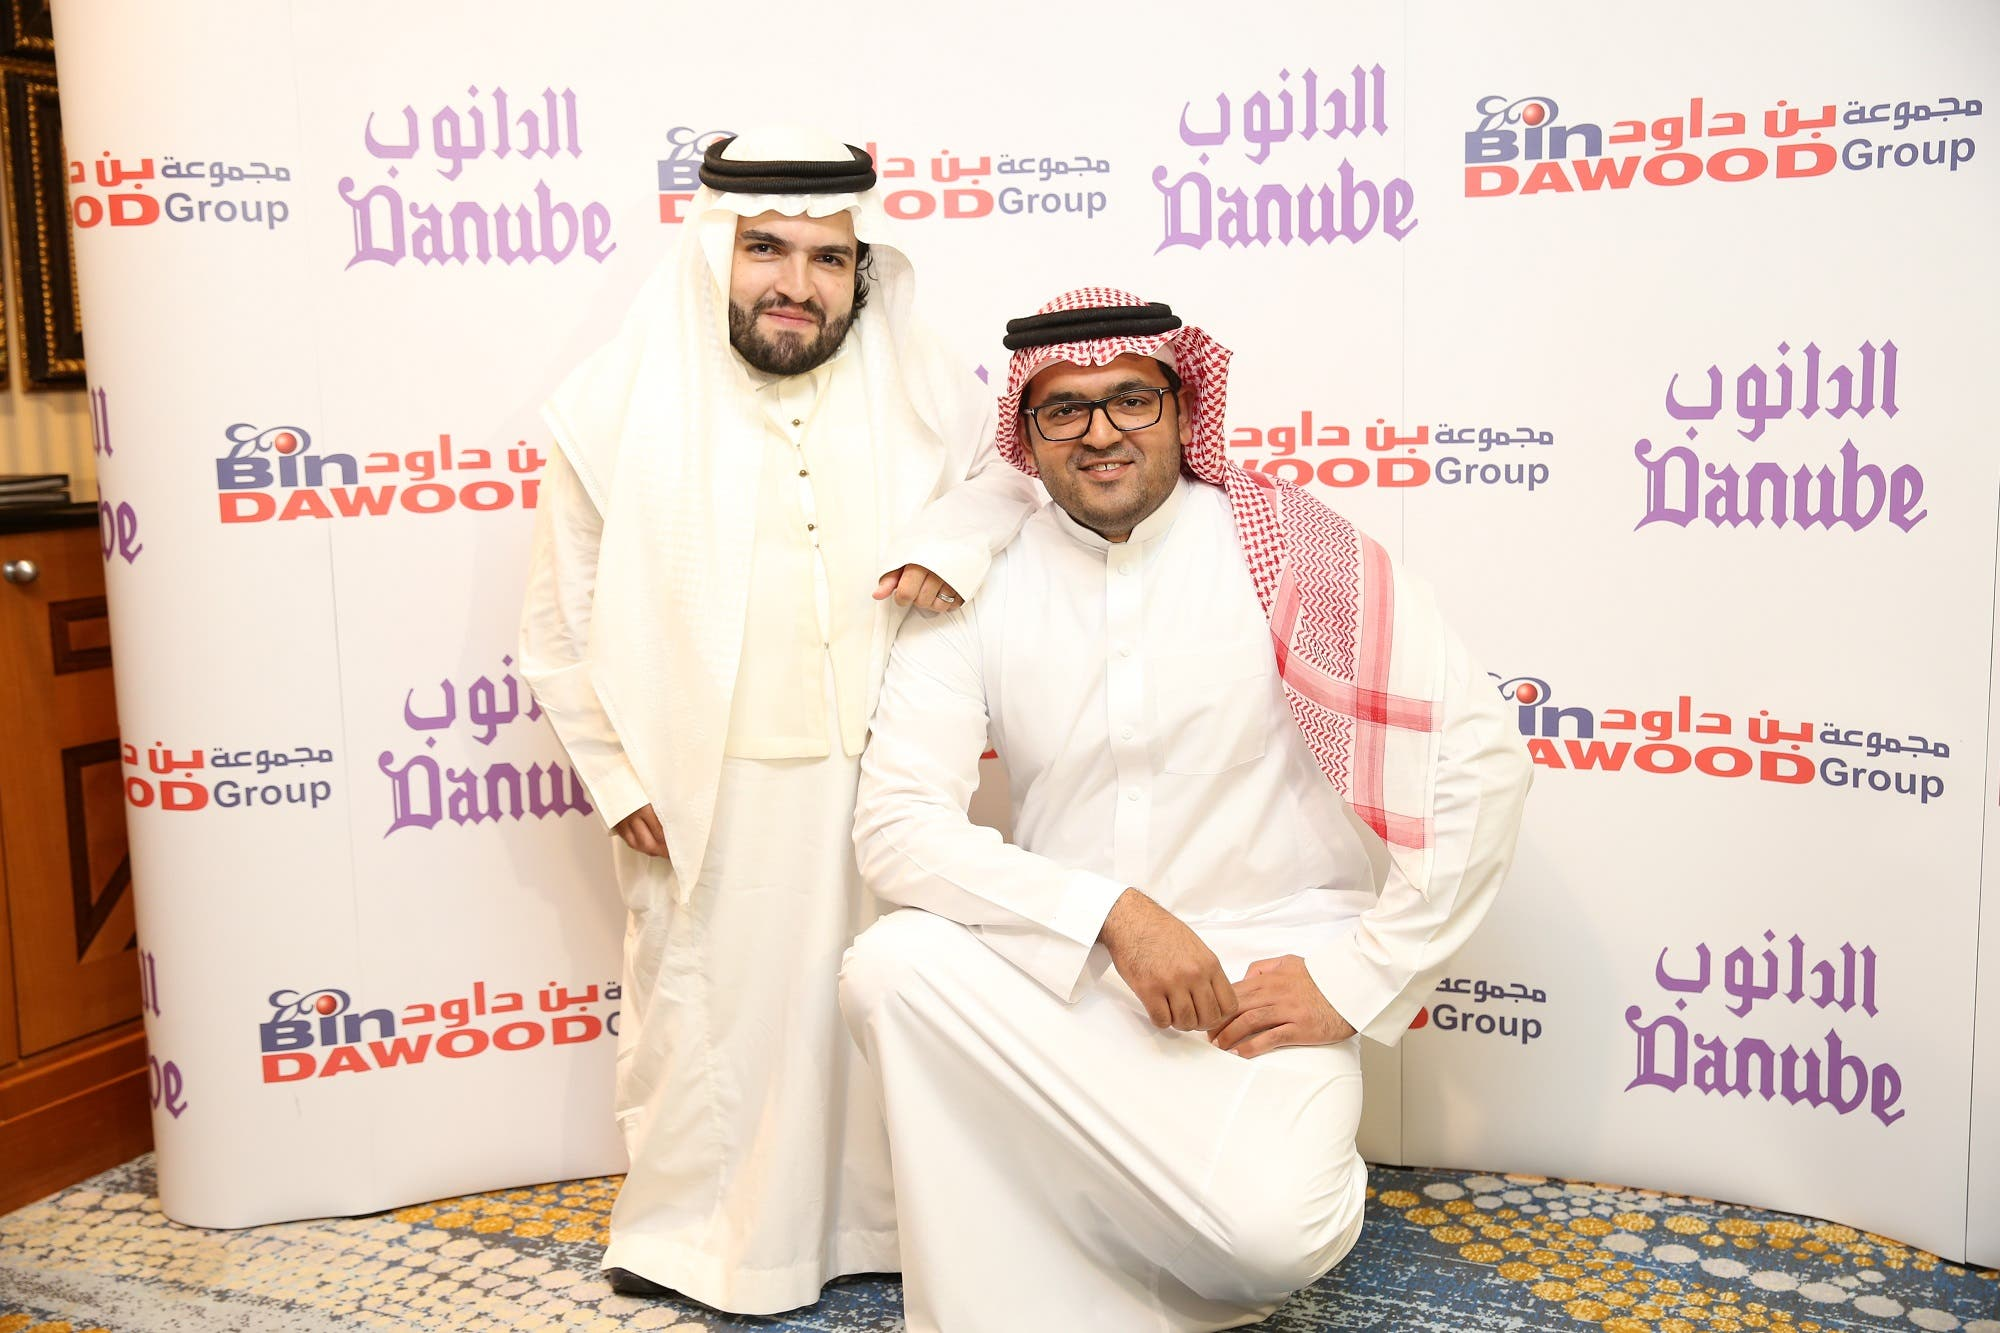 Majed and his colleagues at AYM created the Danube app, and an e-commerce platform, that make grocery order simple. (Supplied)